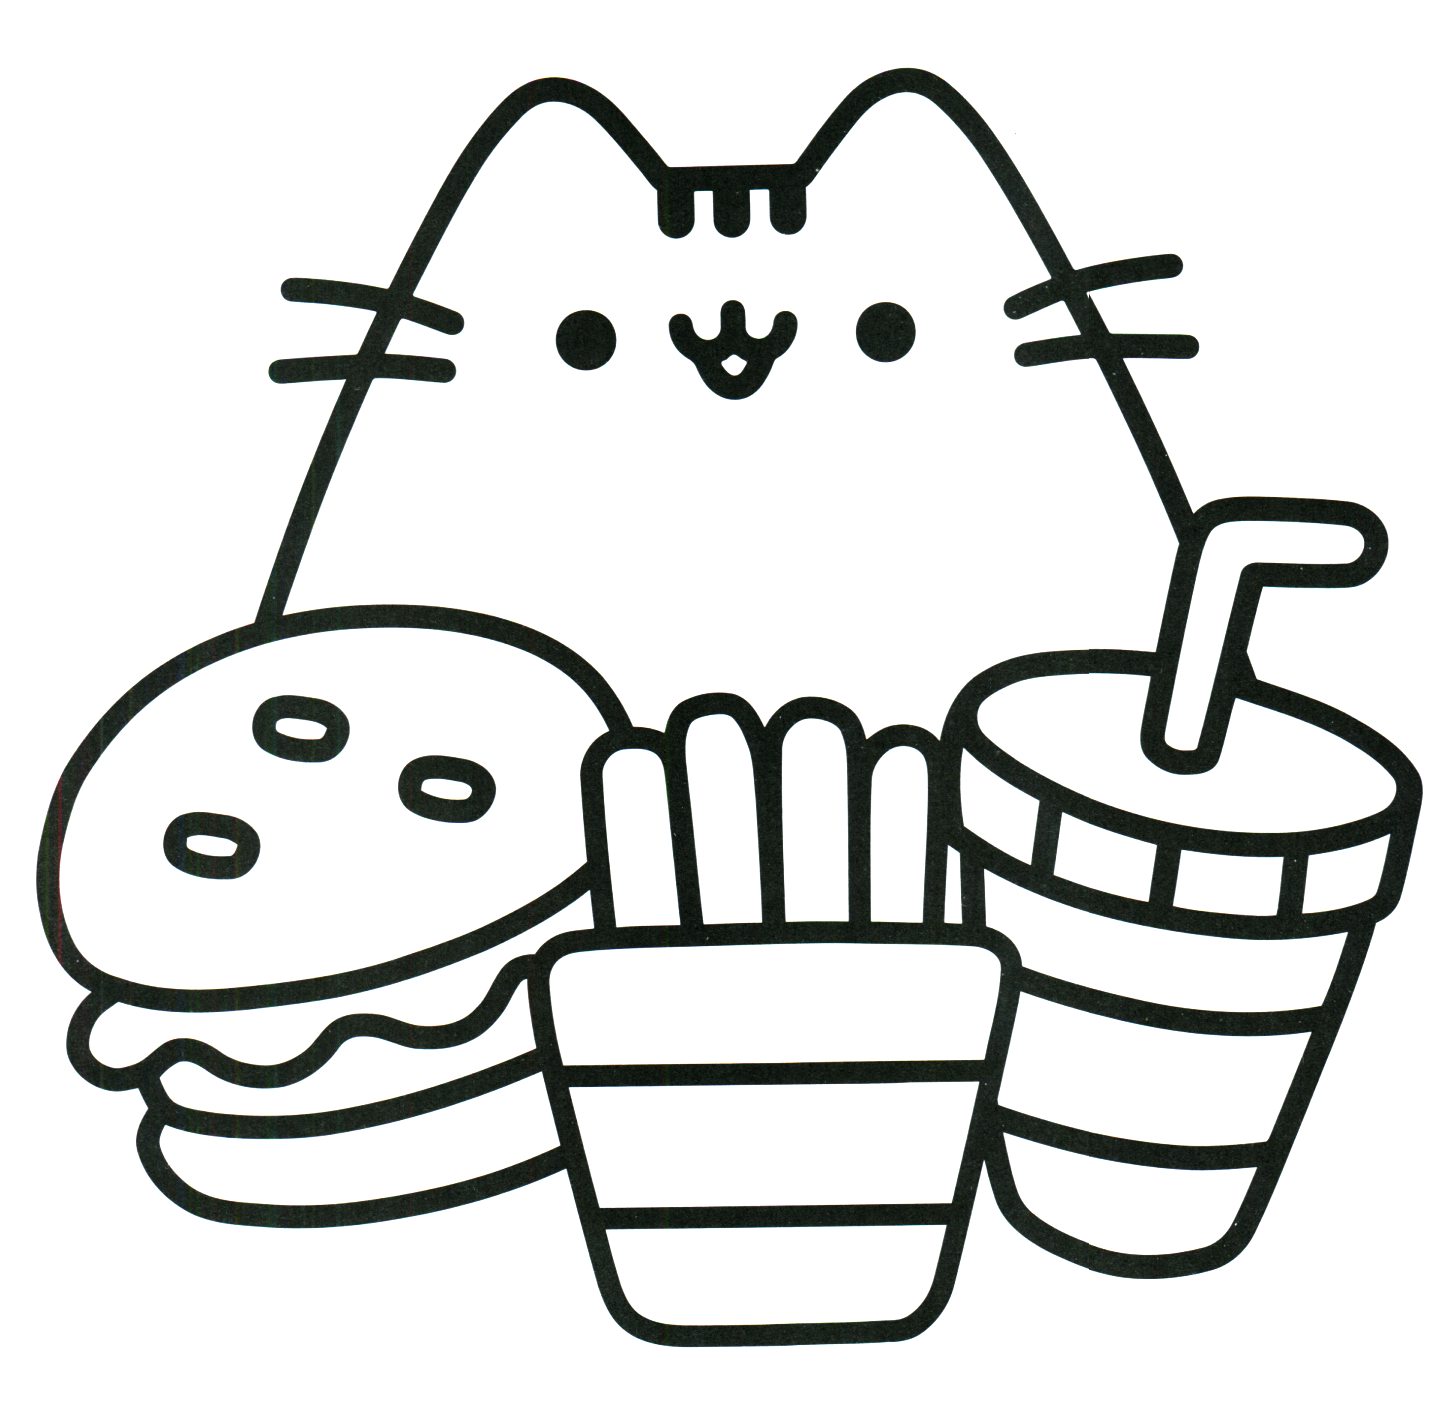 Cute Coloring Pages Pusheen Coloring Book Pusheen Pusheen The Cat  Pusheen Coloring .